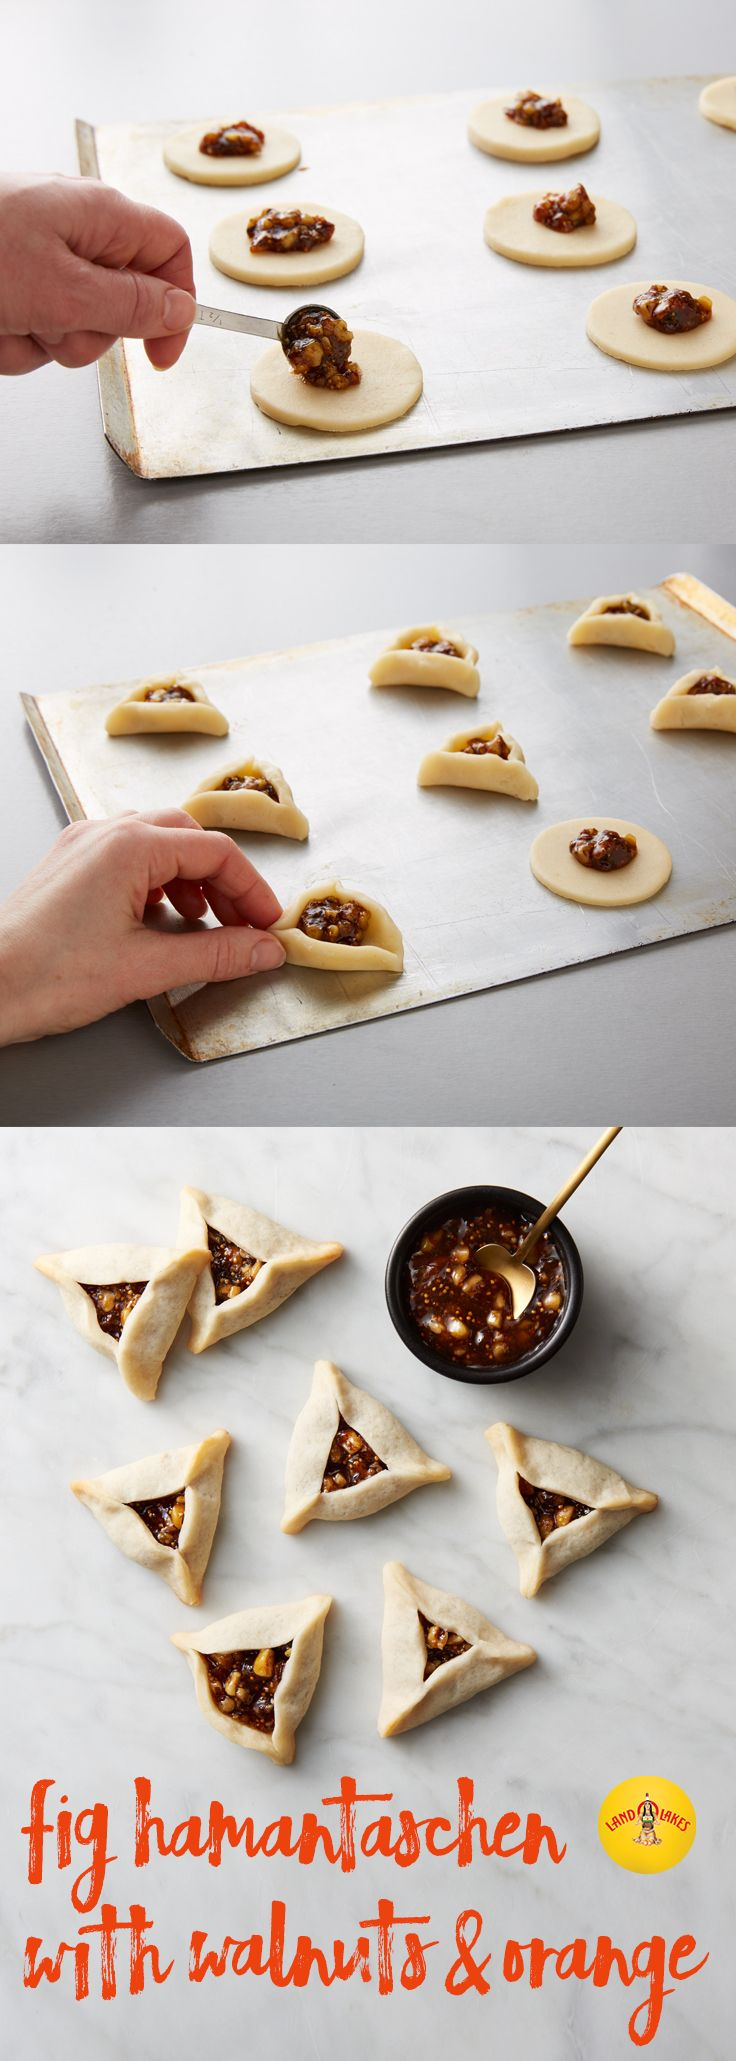 Hamantaschen is a traditional buttery cookie filled with a variety of jams, and is traditionally associated with the Jewish holiday of Purim. Traditional Jewish cookies are dressed up with figs, walnuts and a hint of orange. Try our Fig Hamantaschen today!